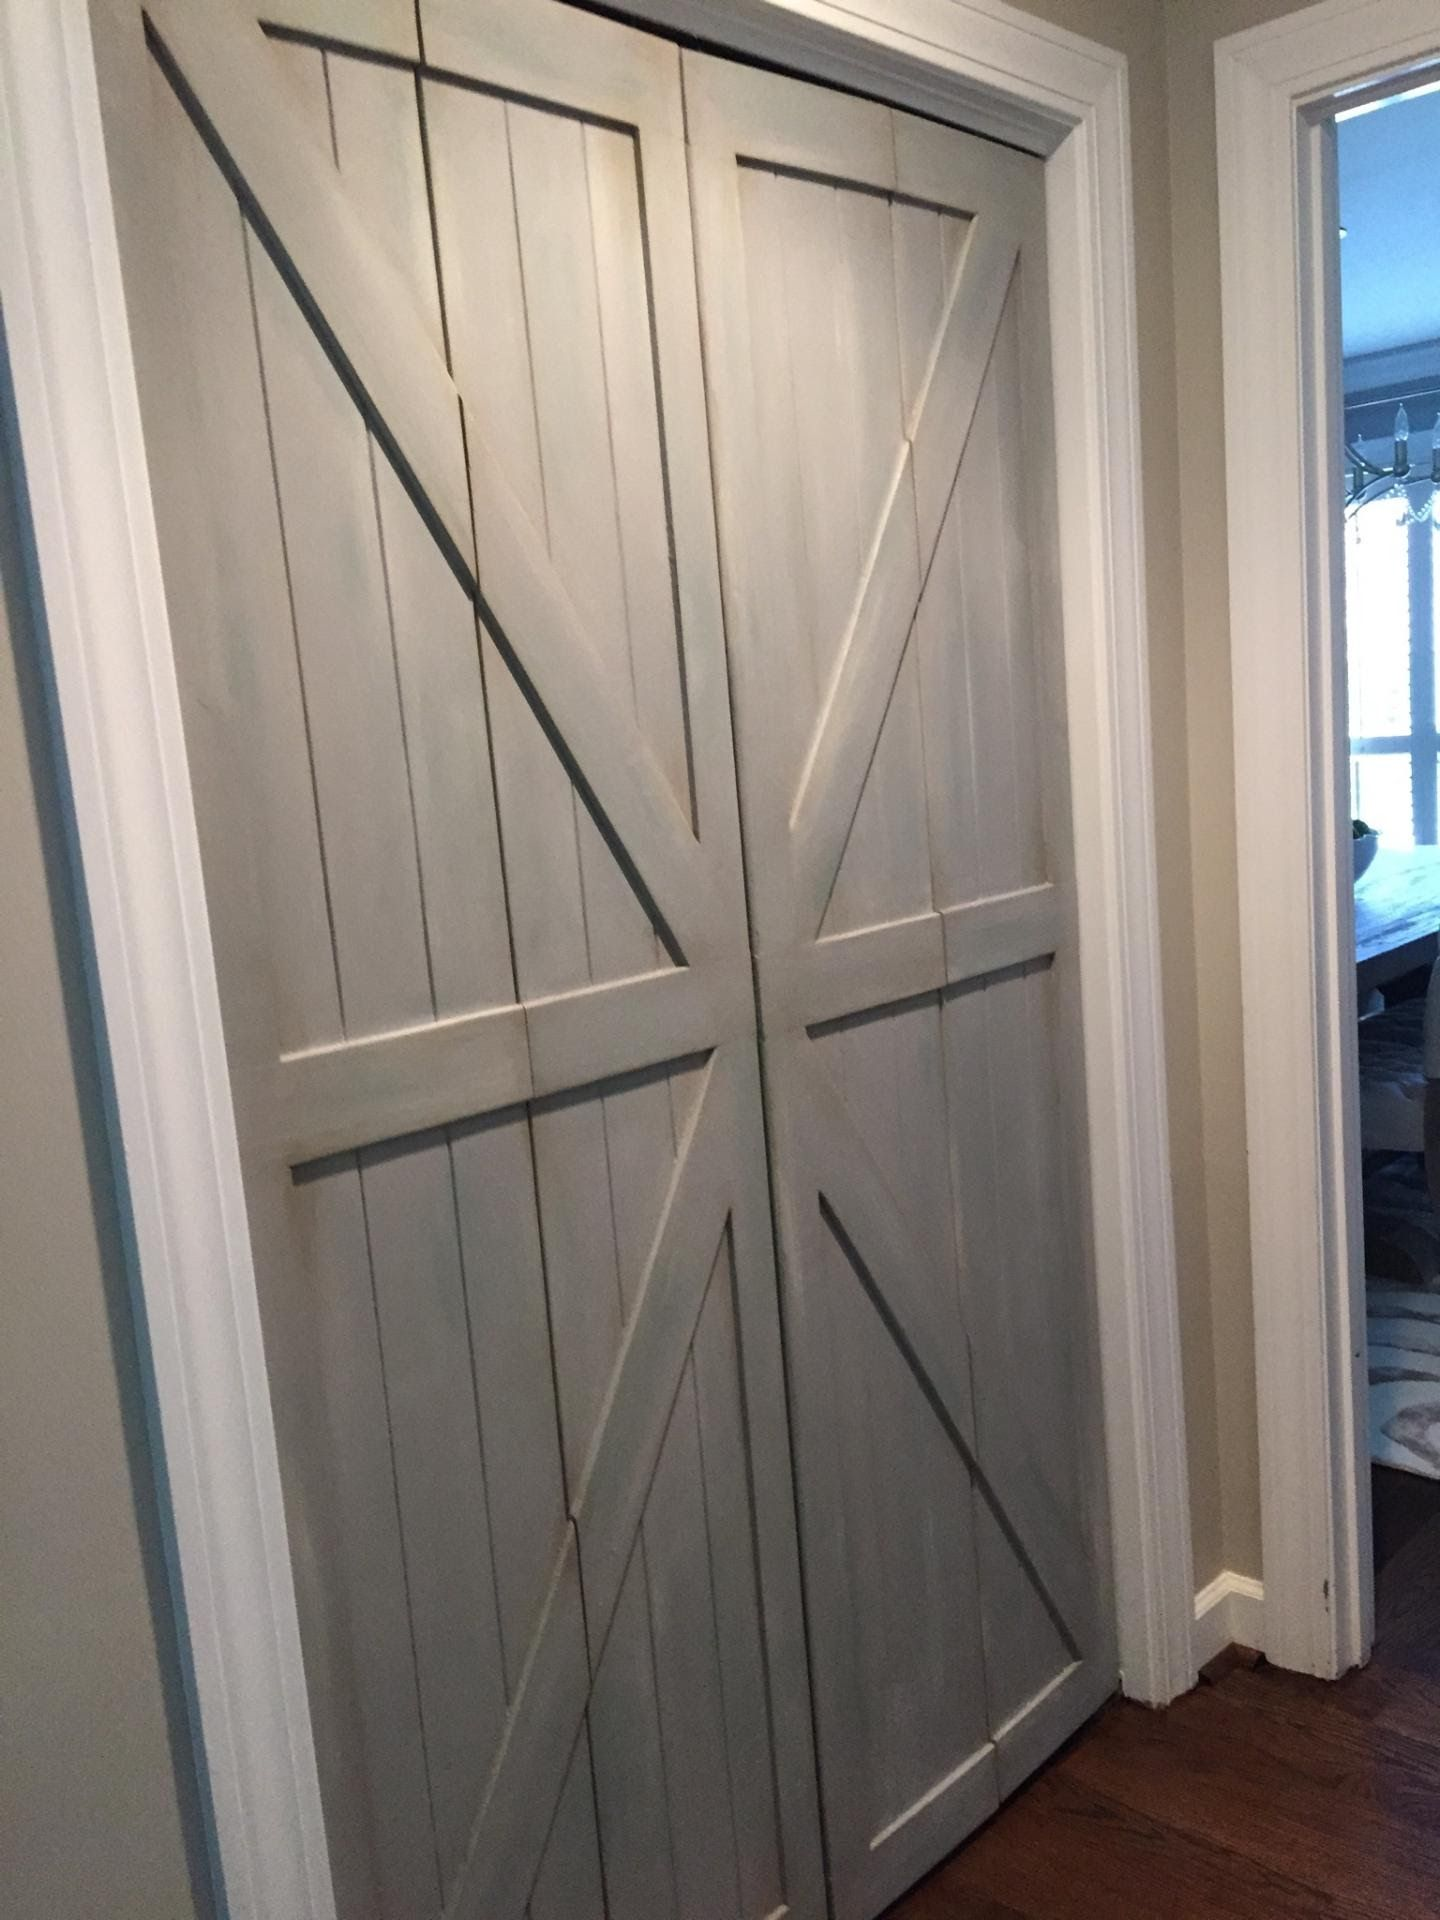 Our Bi-Fold Barn Doors Replace your laundry, pantry or closet ...